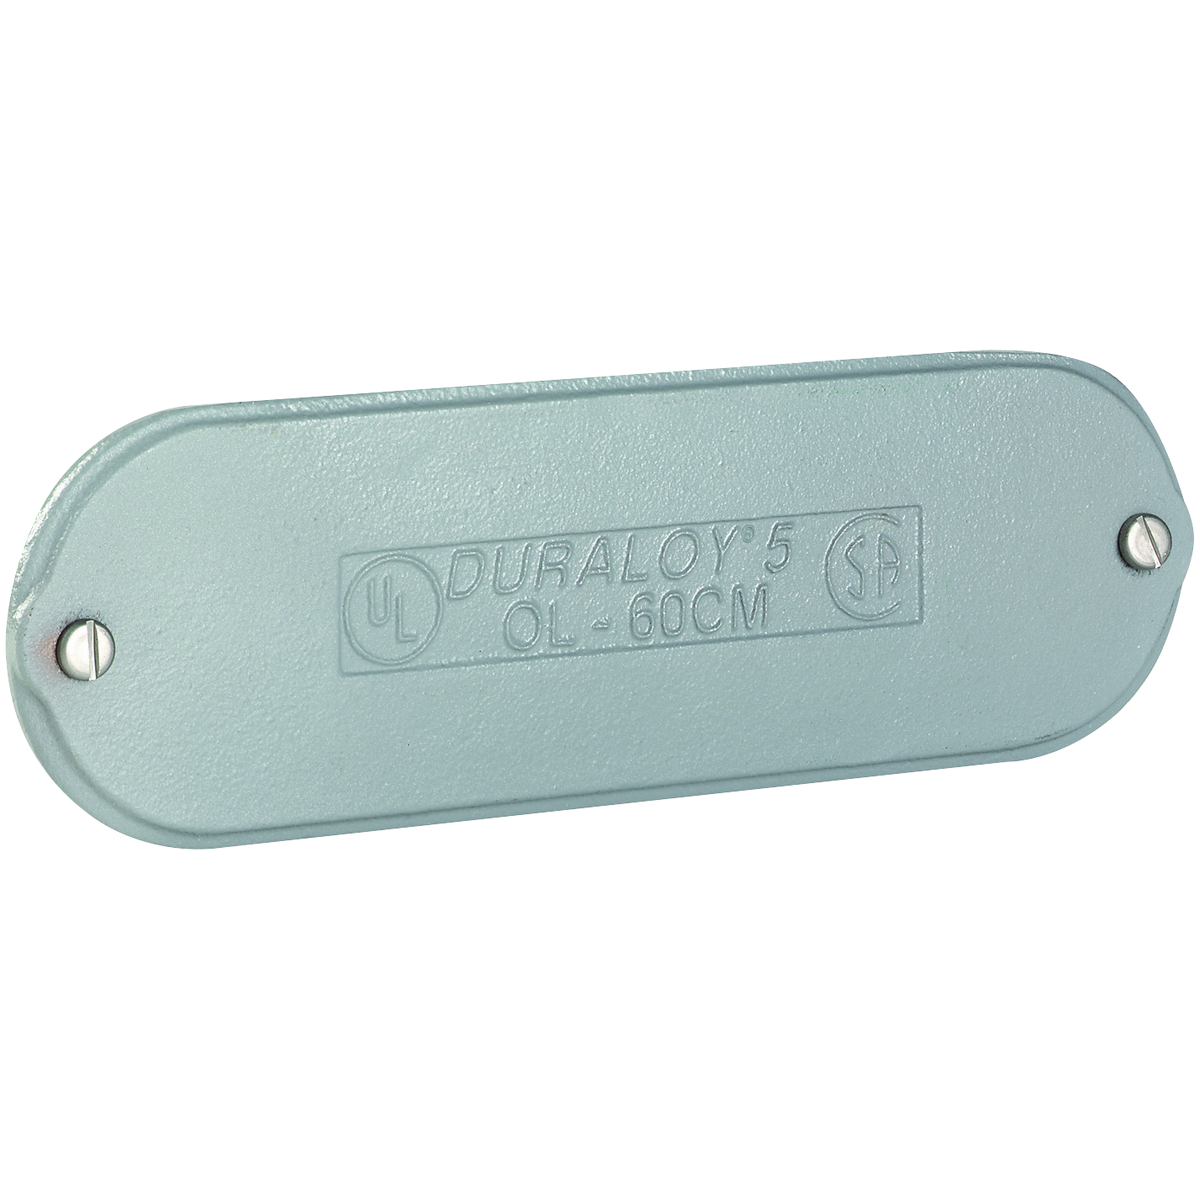 Hubbell OL-60CM Conduit Body Cover